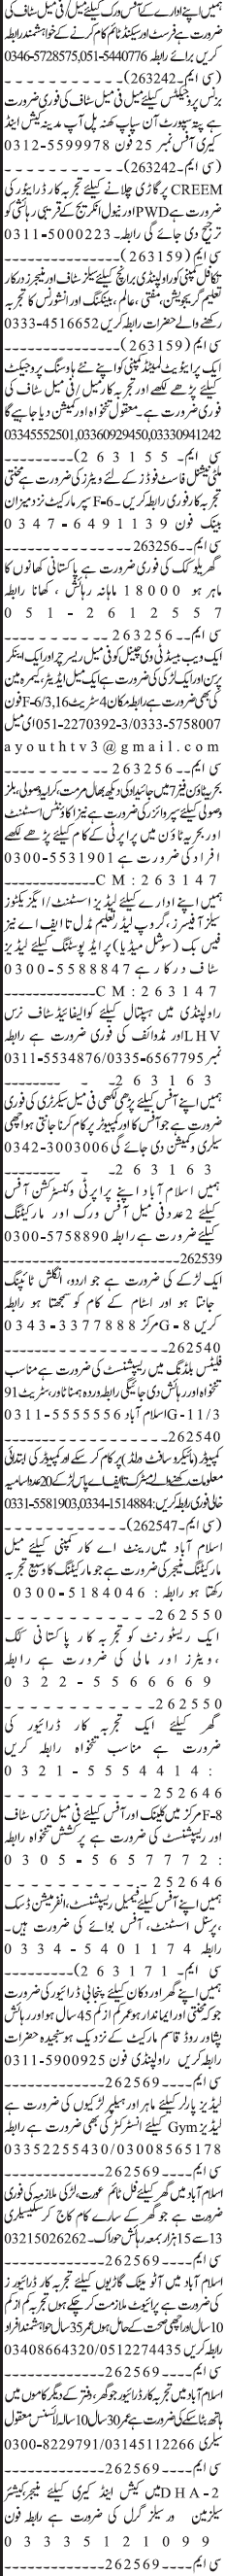 Female Researchers, Anchors Persons, Waiters, Cook Wanted